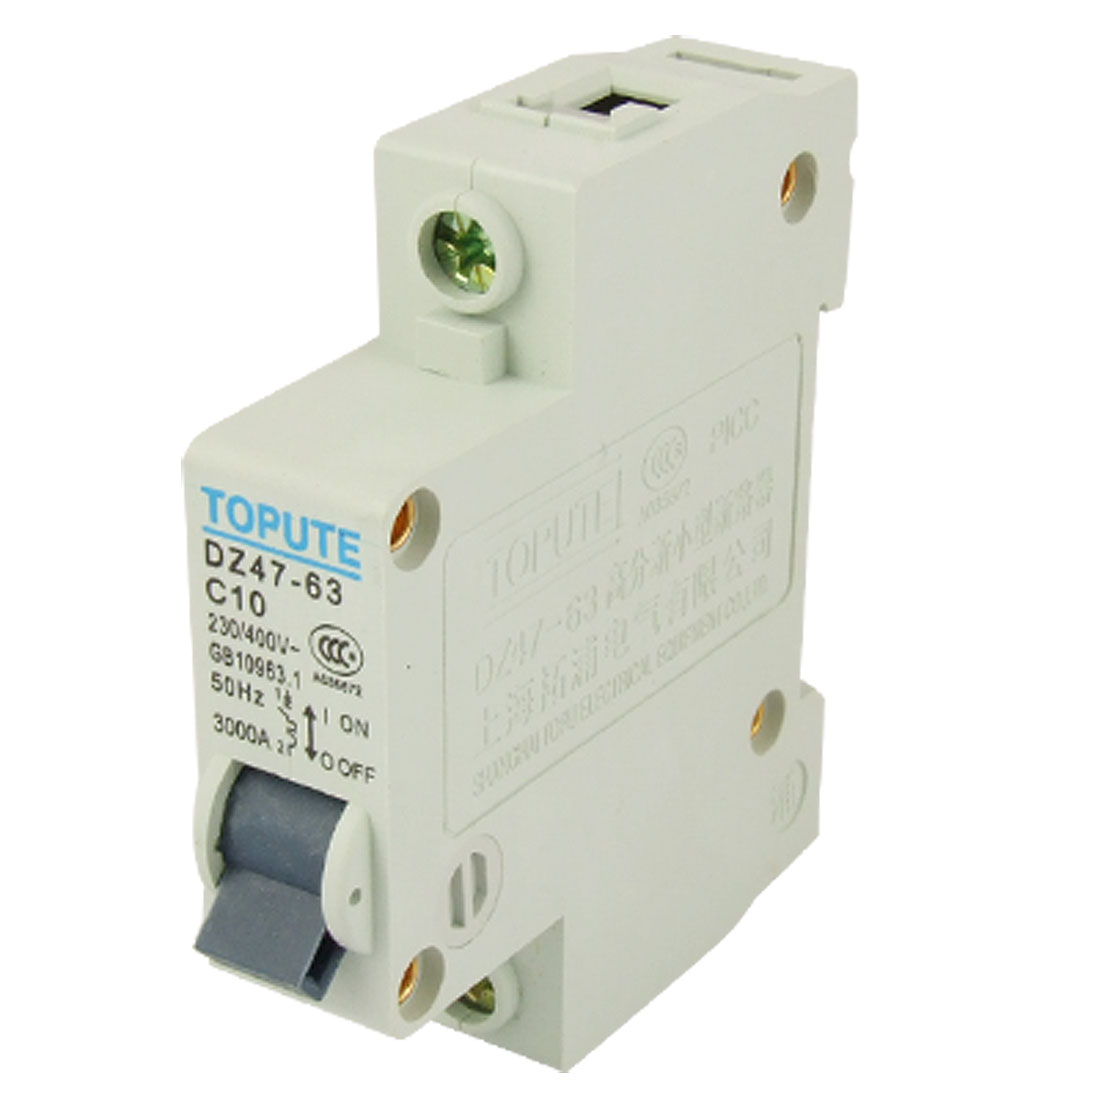 10A Rated Current Single Pole MCB Miniature Circuit Breaker